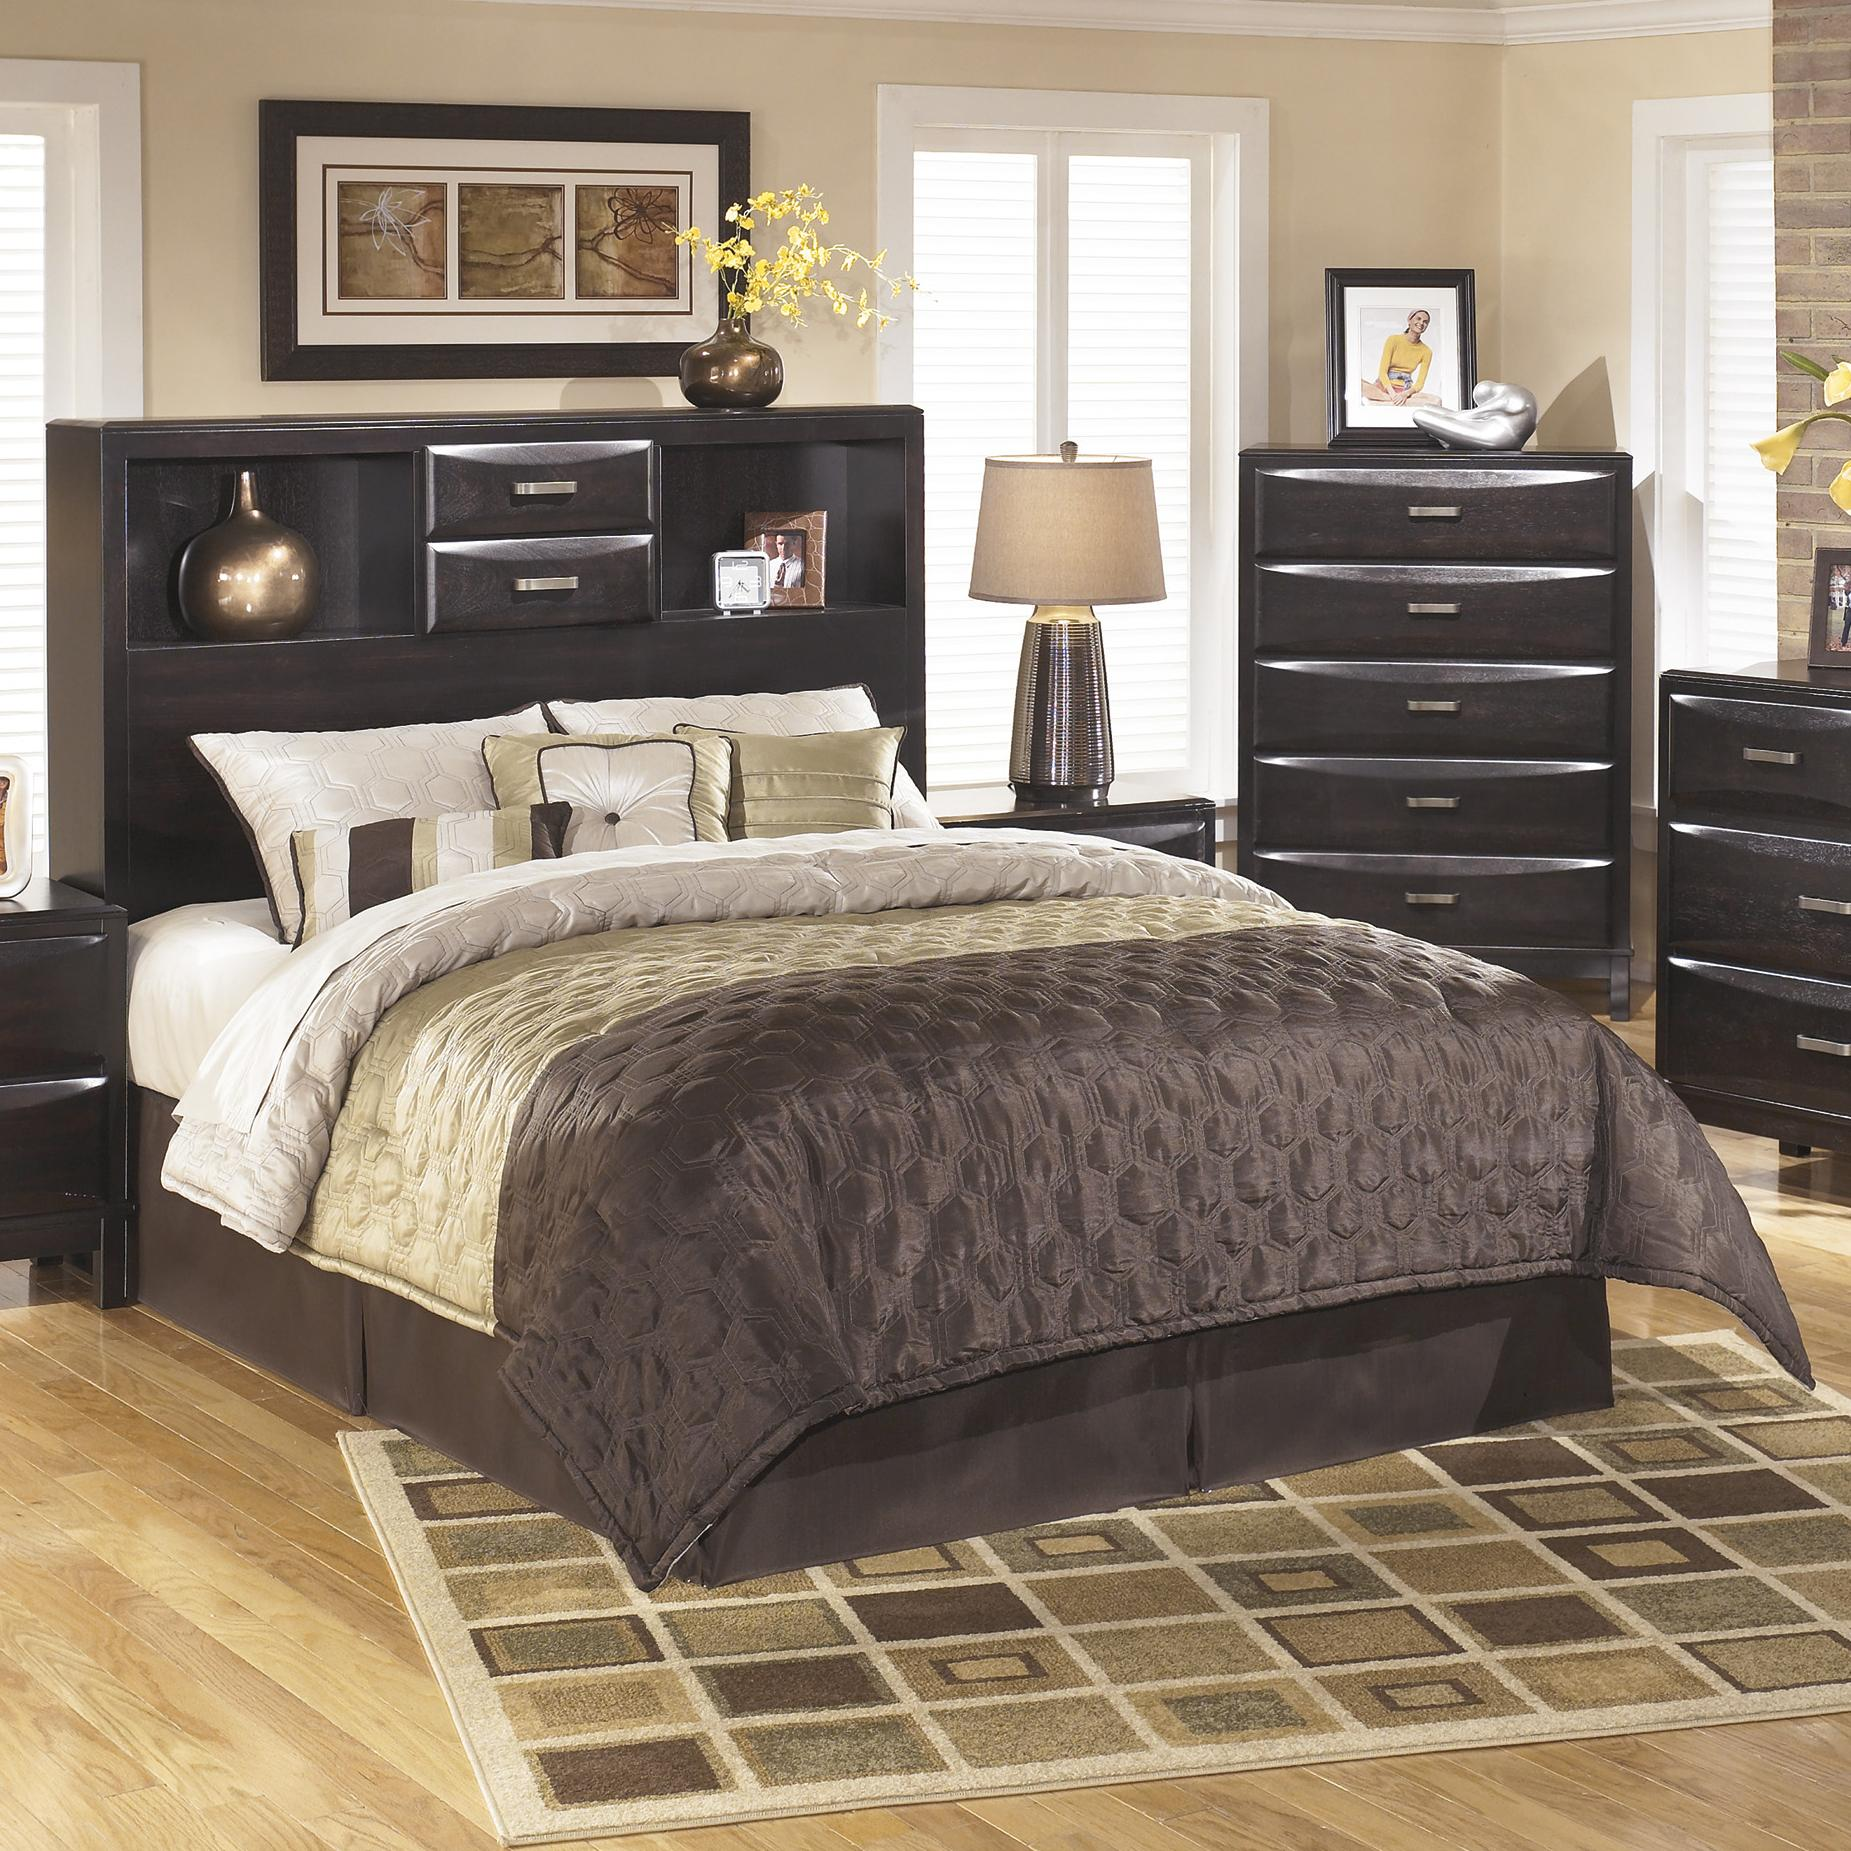 Ashley Furniture Kira B473-65 Queen Storage Headboard ...